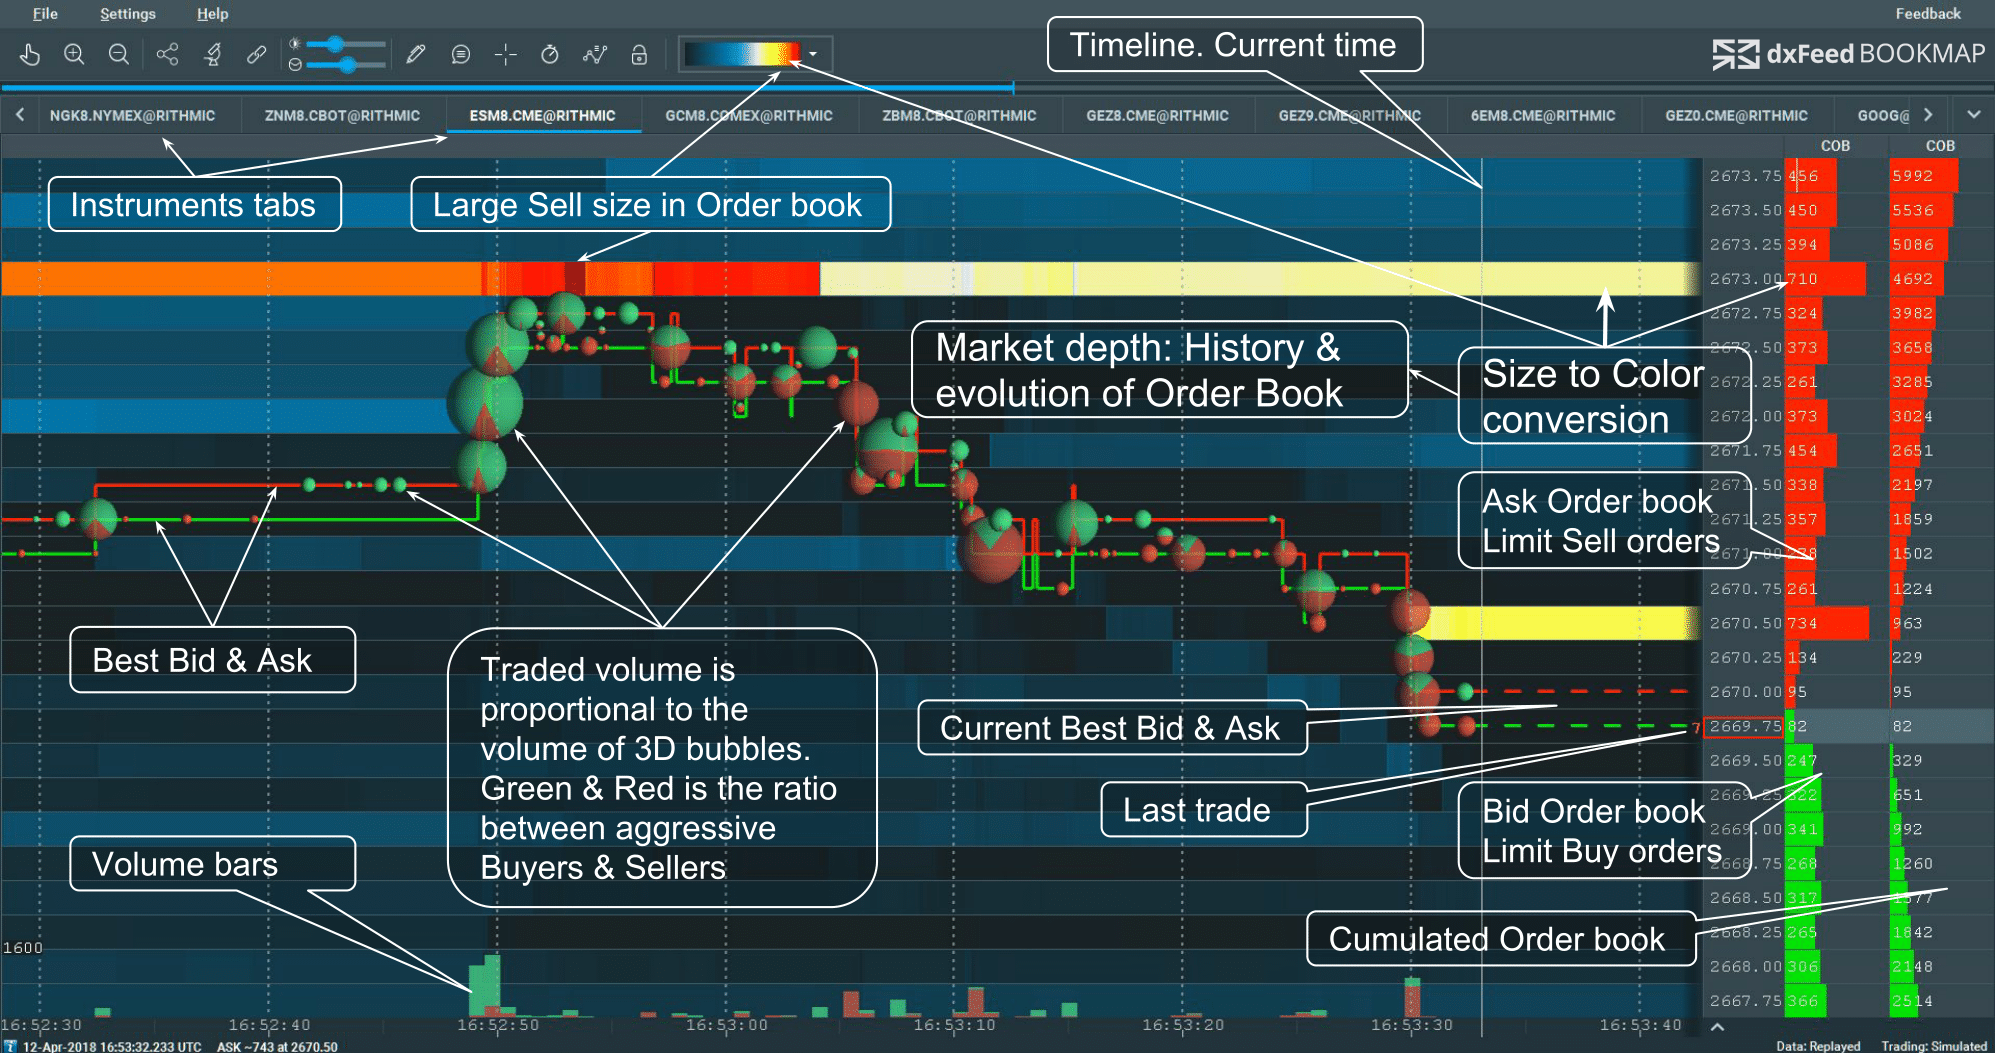 How to Trade via Bookmap: a Detailed Step-By-Step Guide